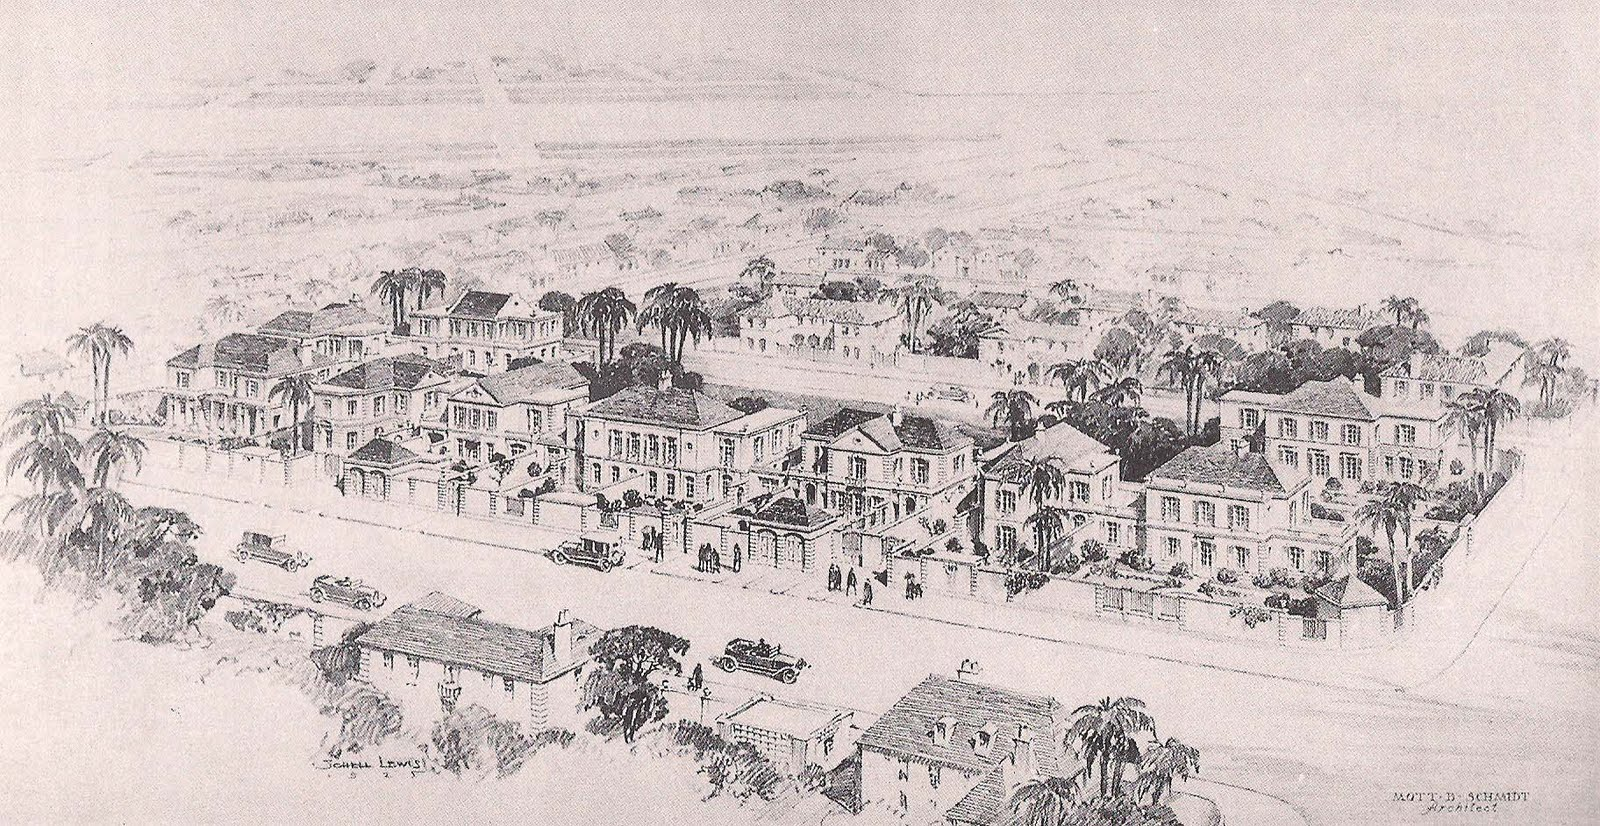 1600x826 The Devoted Classicist Villages Of Coral Gables